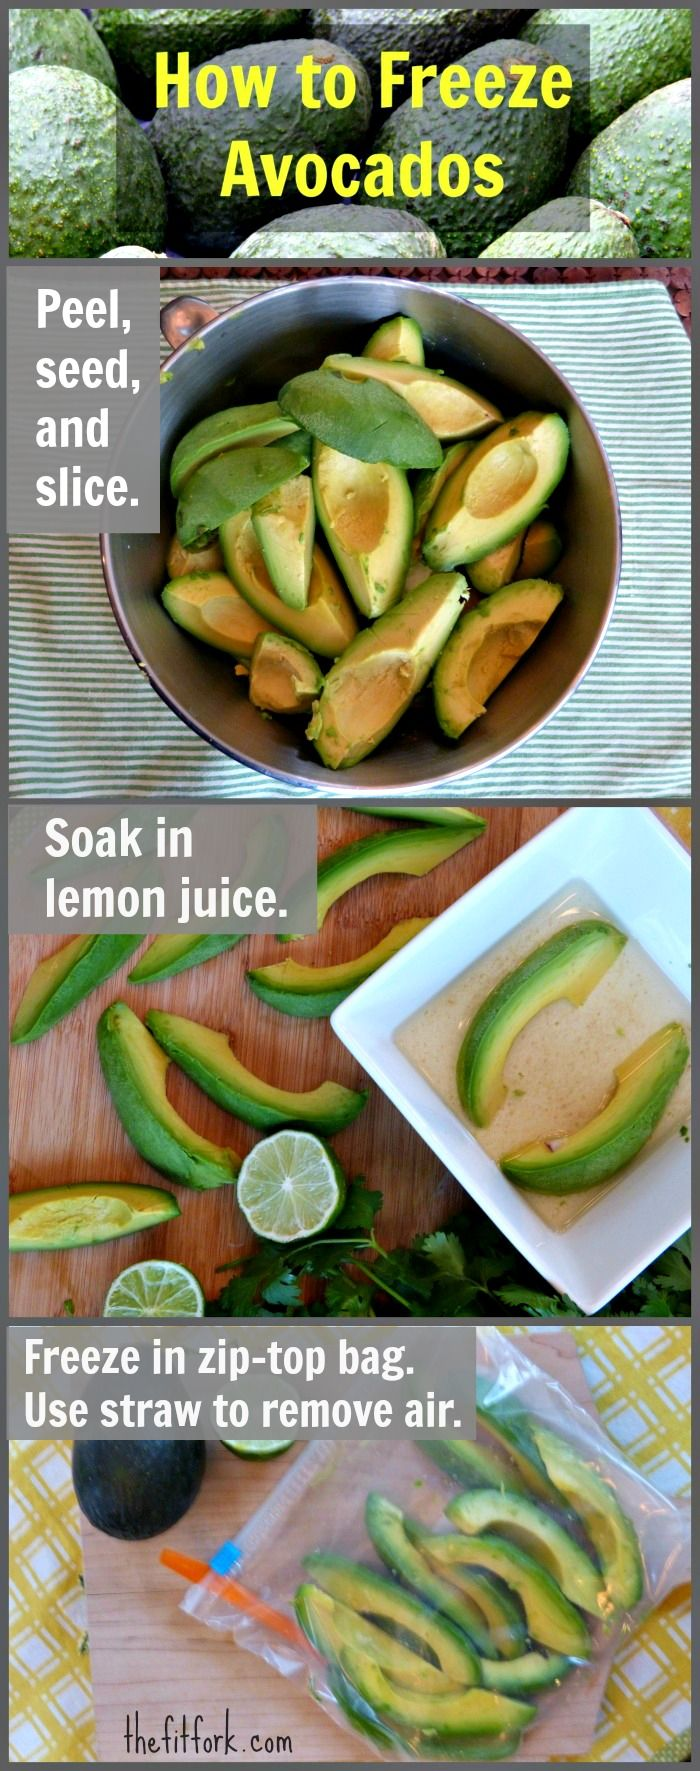 Don't want your leftover avocados to go bad? Find out how to freeze avocado for use later in guacamole, smoothies and other healthy recipes. | thefitfork.com